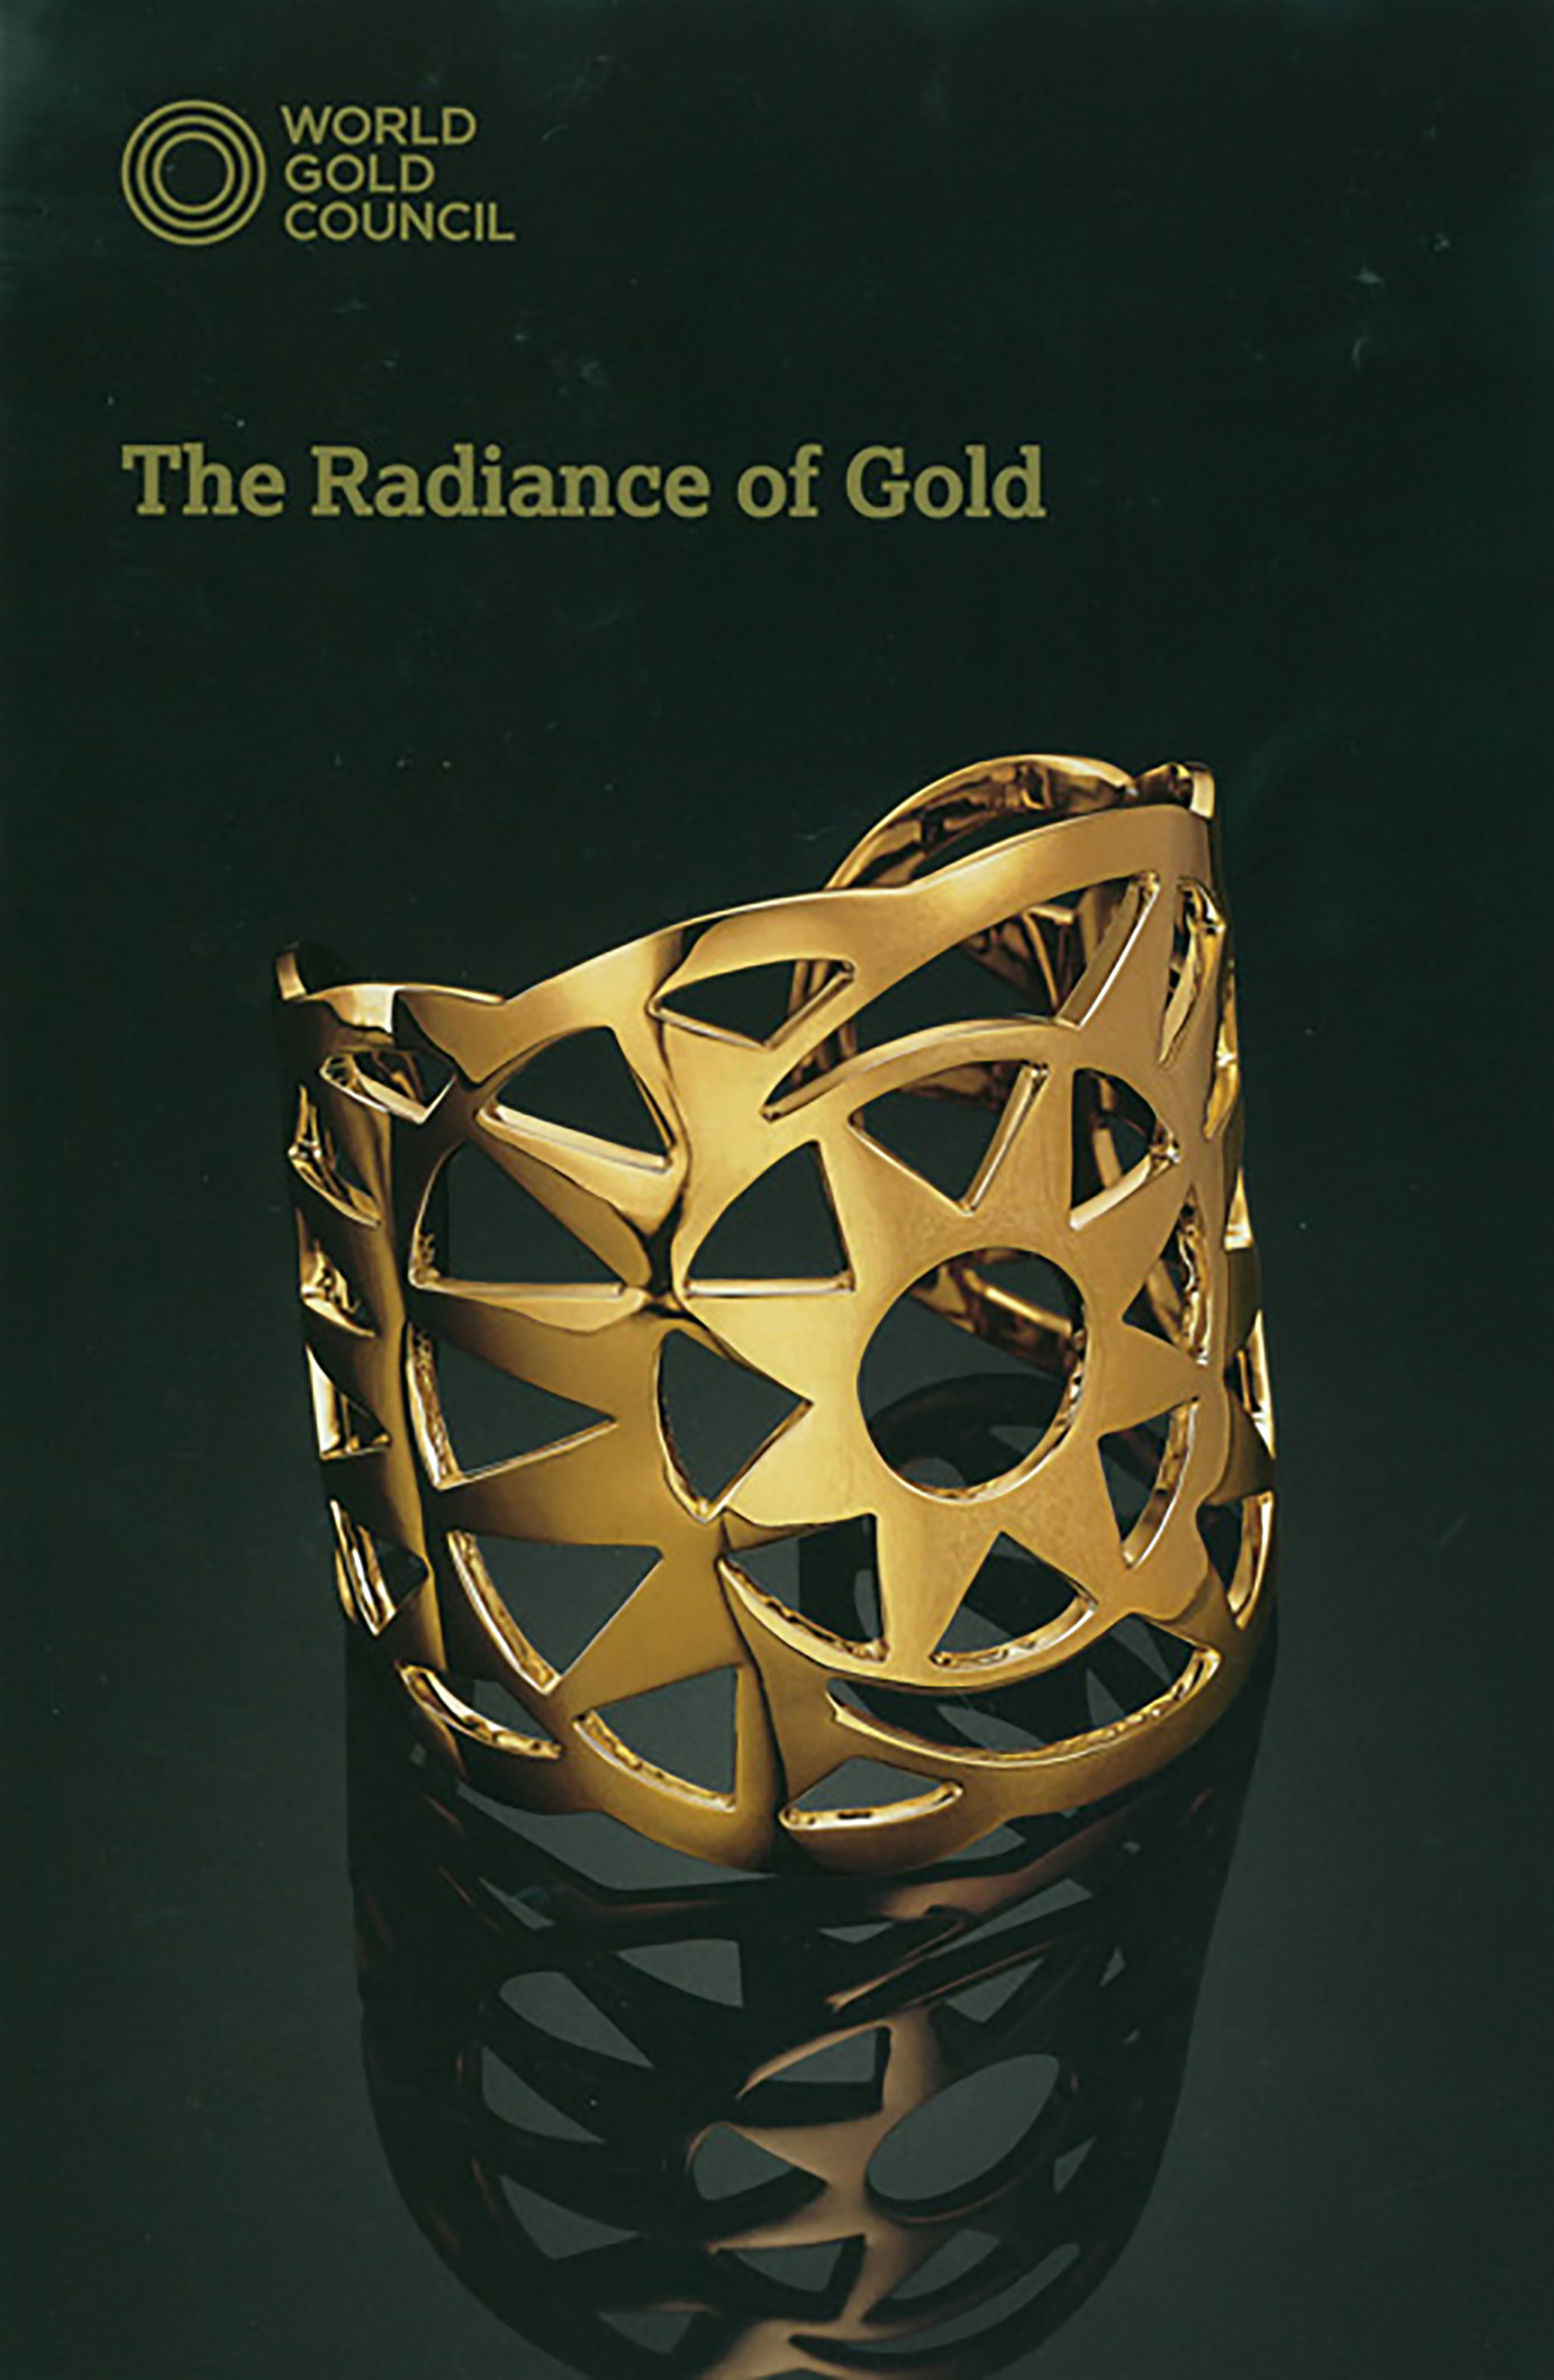 WGC Radiaance of Gold May 2012